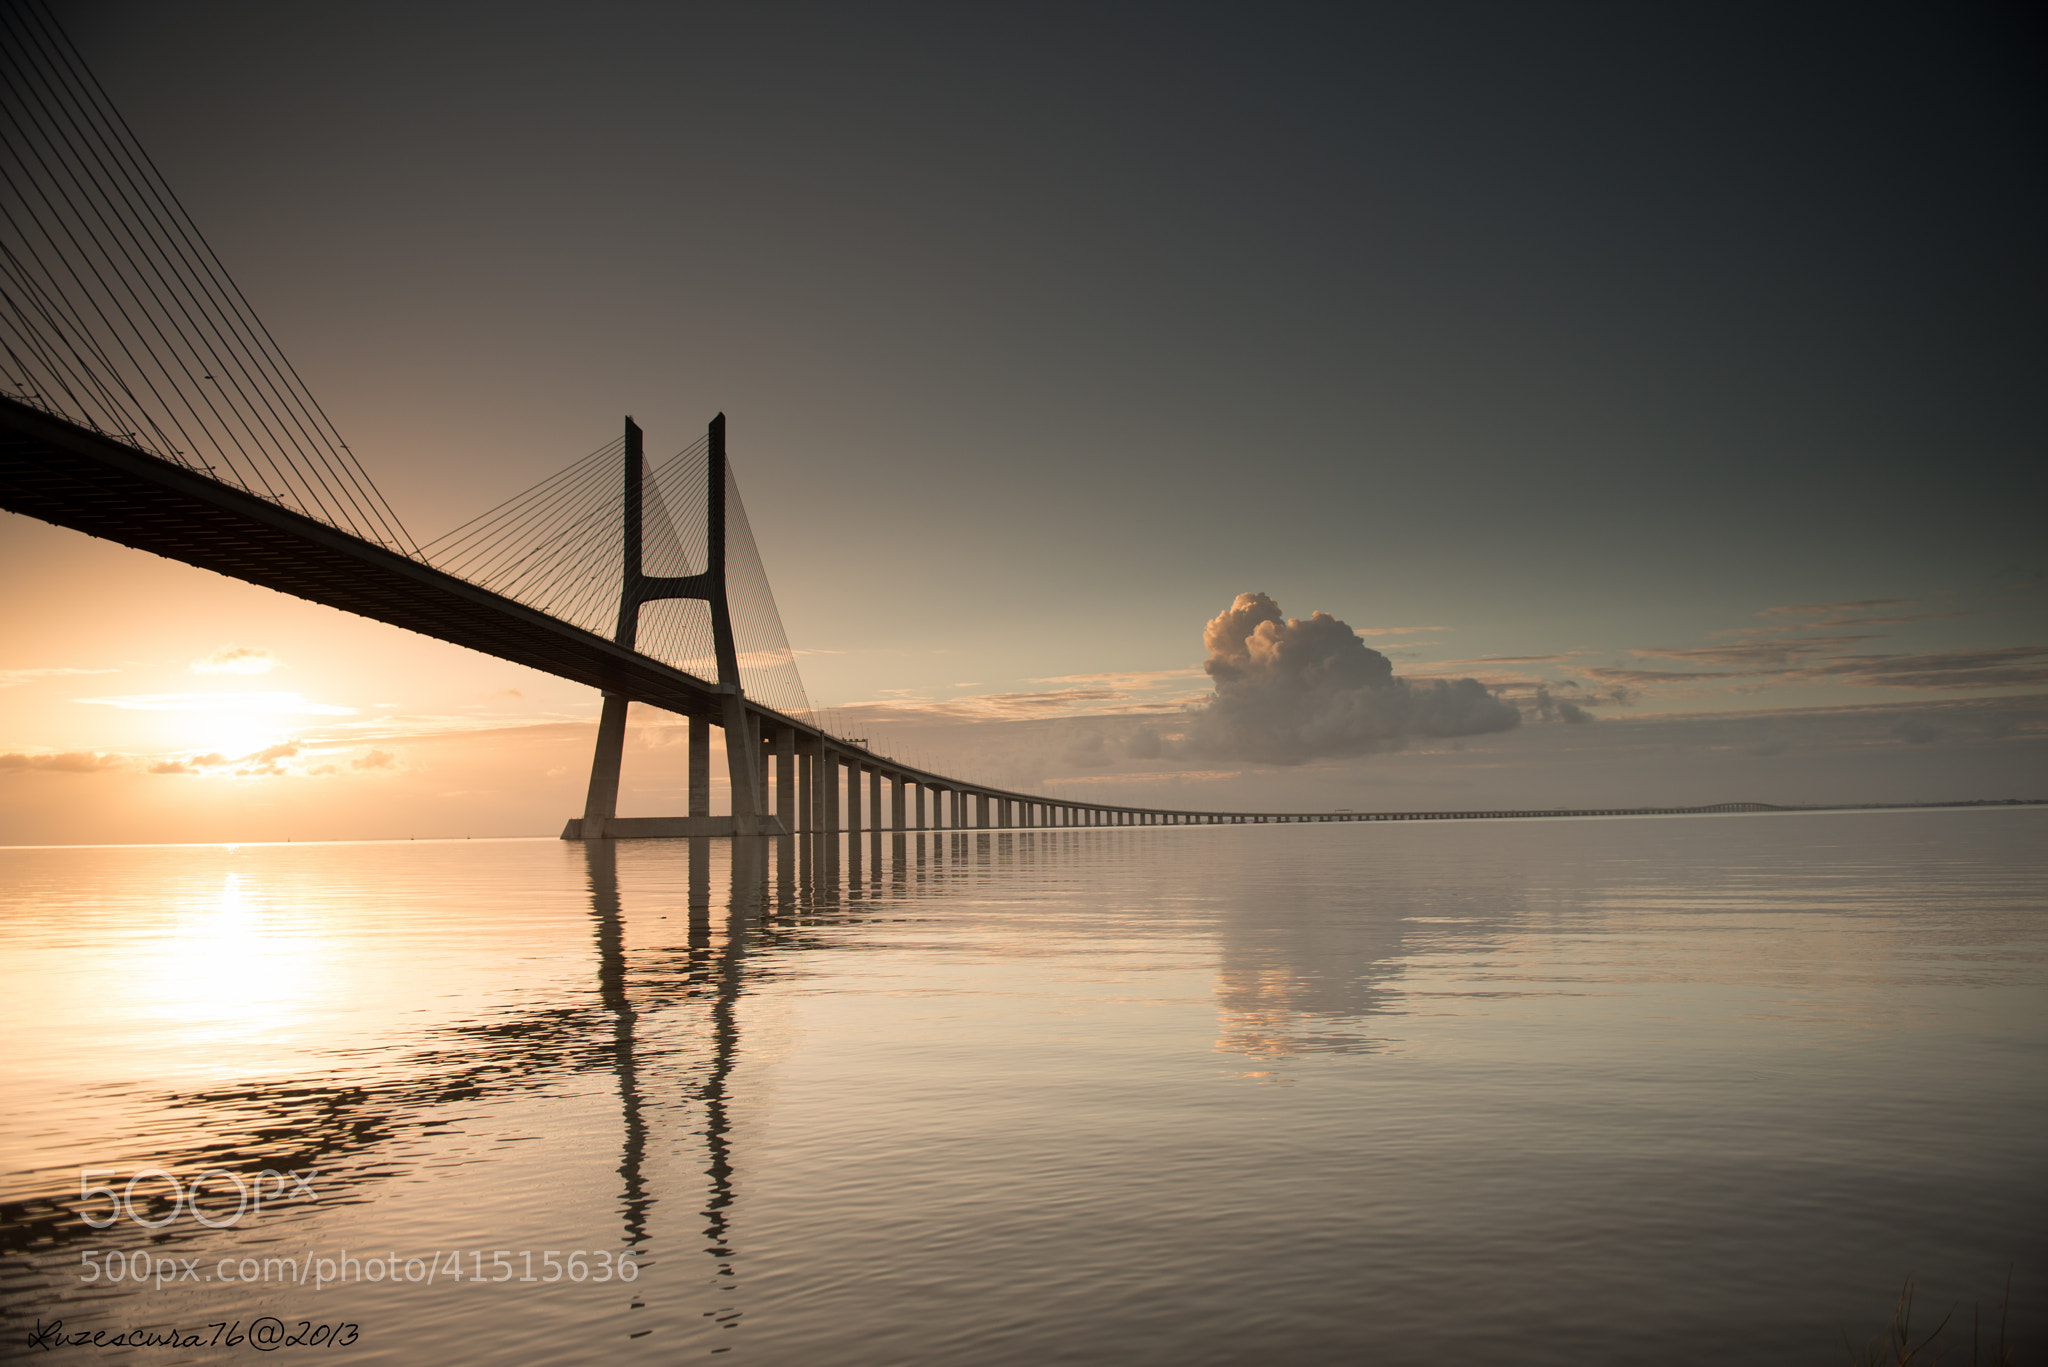 Photograph Bridge II by Pedro Oliveira on 500px